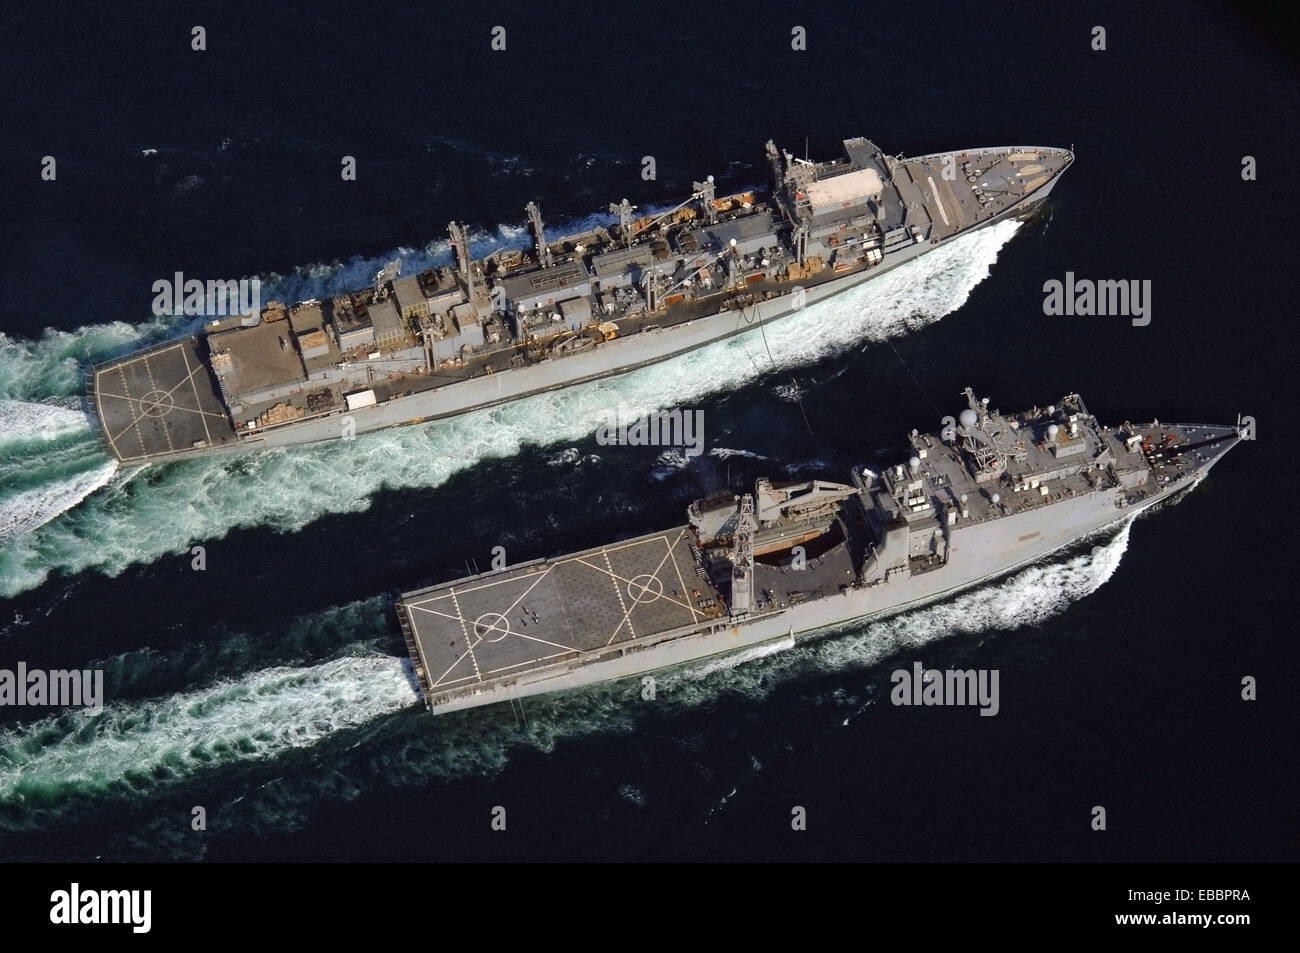 The fast combat logistic support ship USNS Supply (T-AOE 6), left, conducts an underway replenishment with USS Comstock - Stock Image